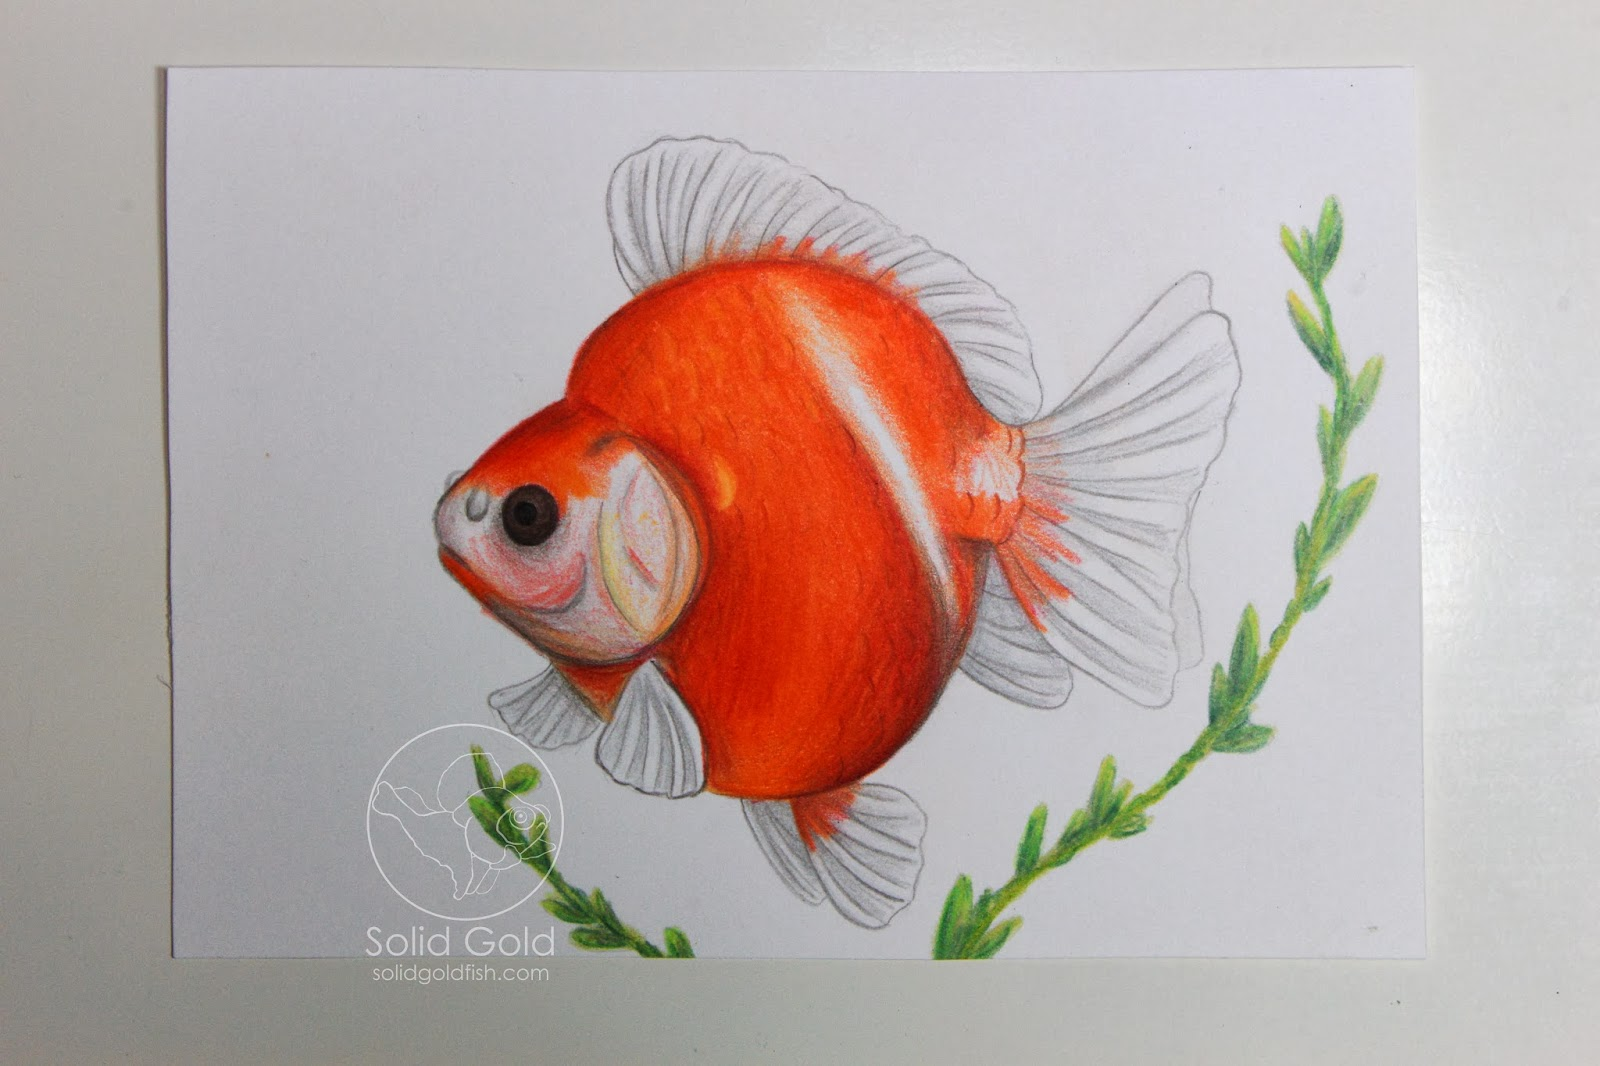 Solid Gold Sketchbook – Solid Gold Aquatics